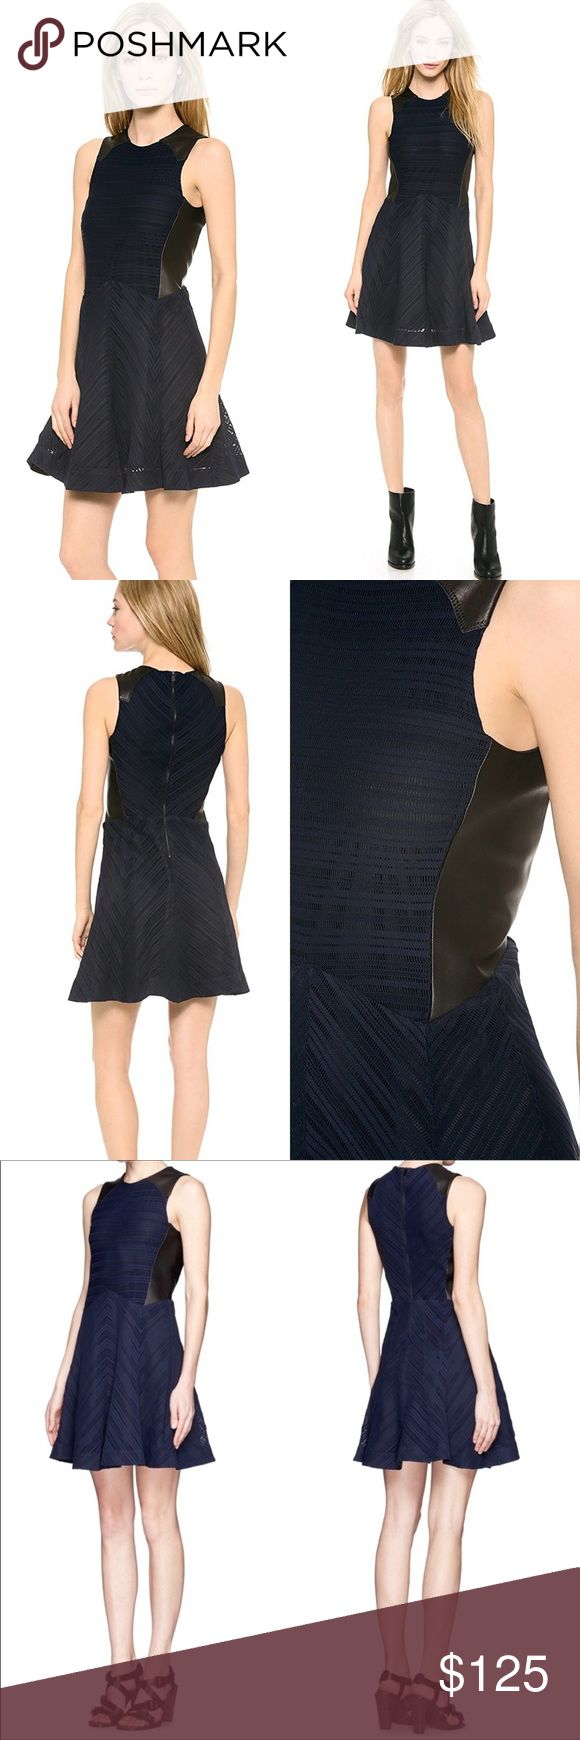 rag & bone Basha Leather Trim Dress - Indigo, 2 Glazed black leather panels play against delicate indigo knit on this Rag & Bone dress, effecting a hard-meets-soft aesthetic. A fit-and-flare cut keeps the shape flirty. Exposed back zip. Lined.  Fabric: Slinky, loose knit. 96% polyamide/4% lycra spandex. Leather clean. Made in the USA. rag & bone Dresses Mini